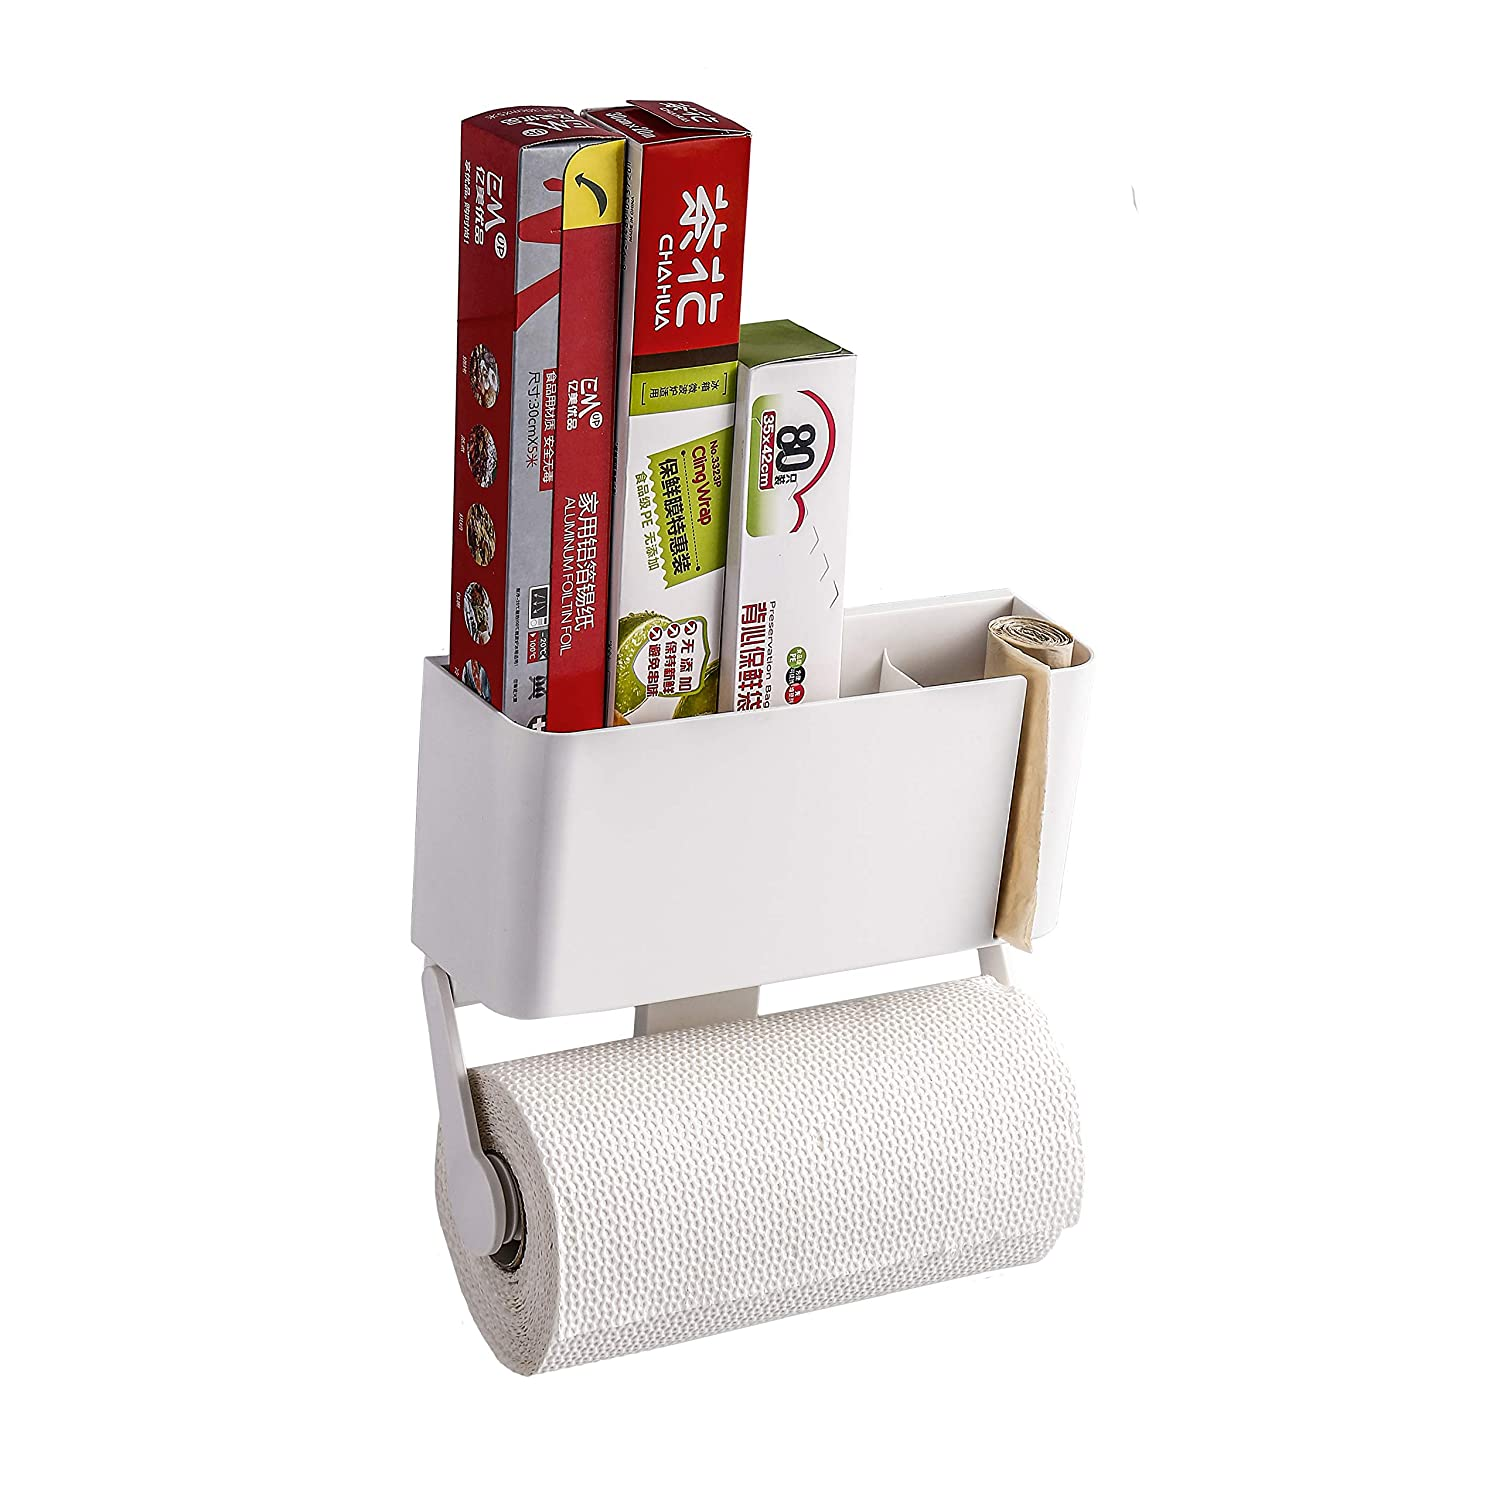 Magnetic Paper Towel Holder with Storage Box, Multifunctional Kitchen Rack Organizer Suitable for Refrigerator,Microwave Oven and Metal Surface